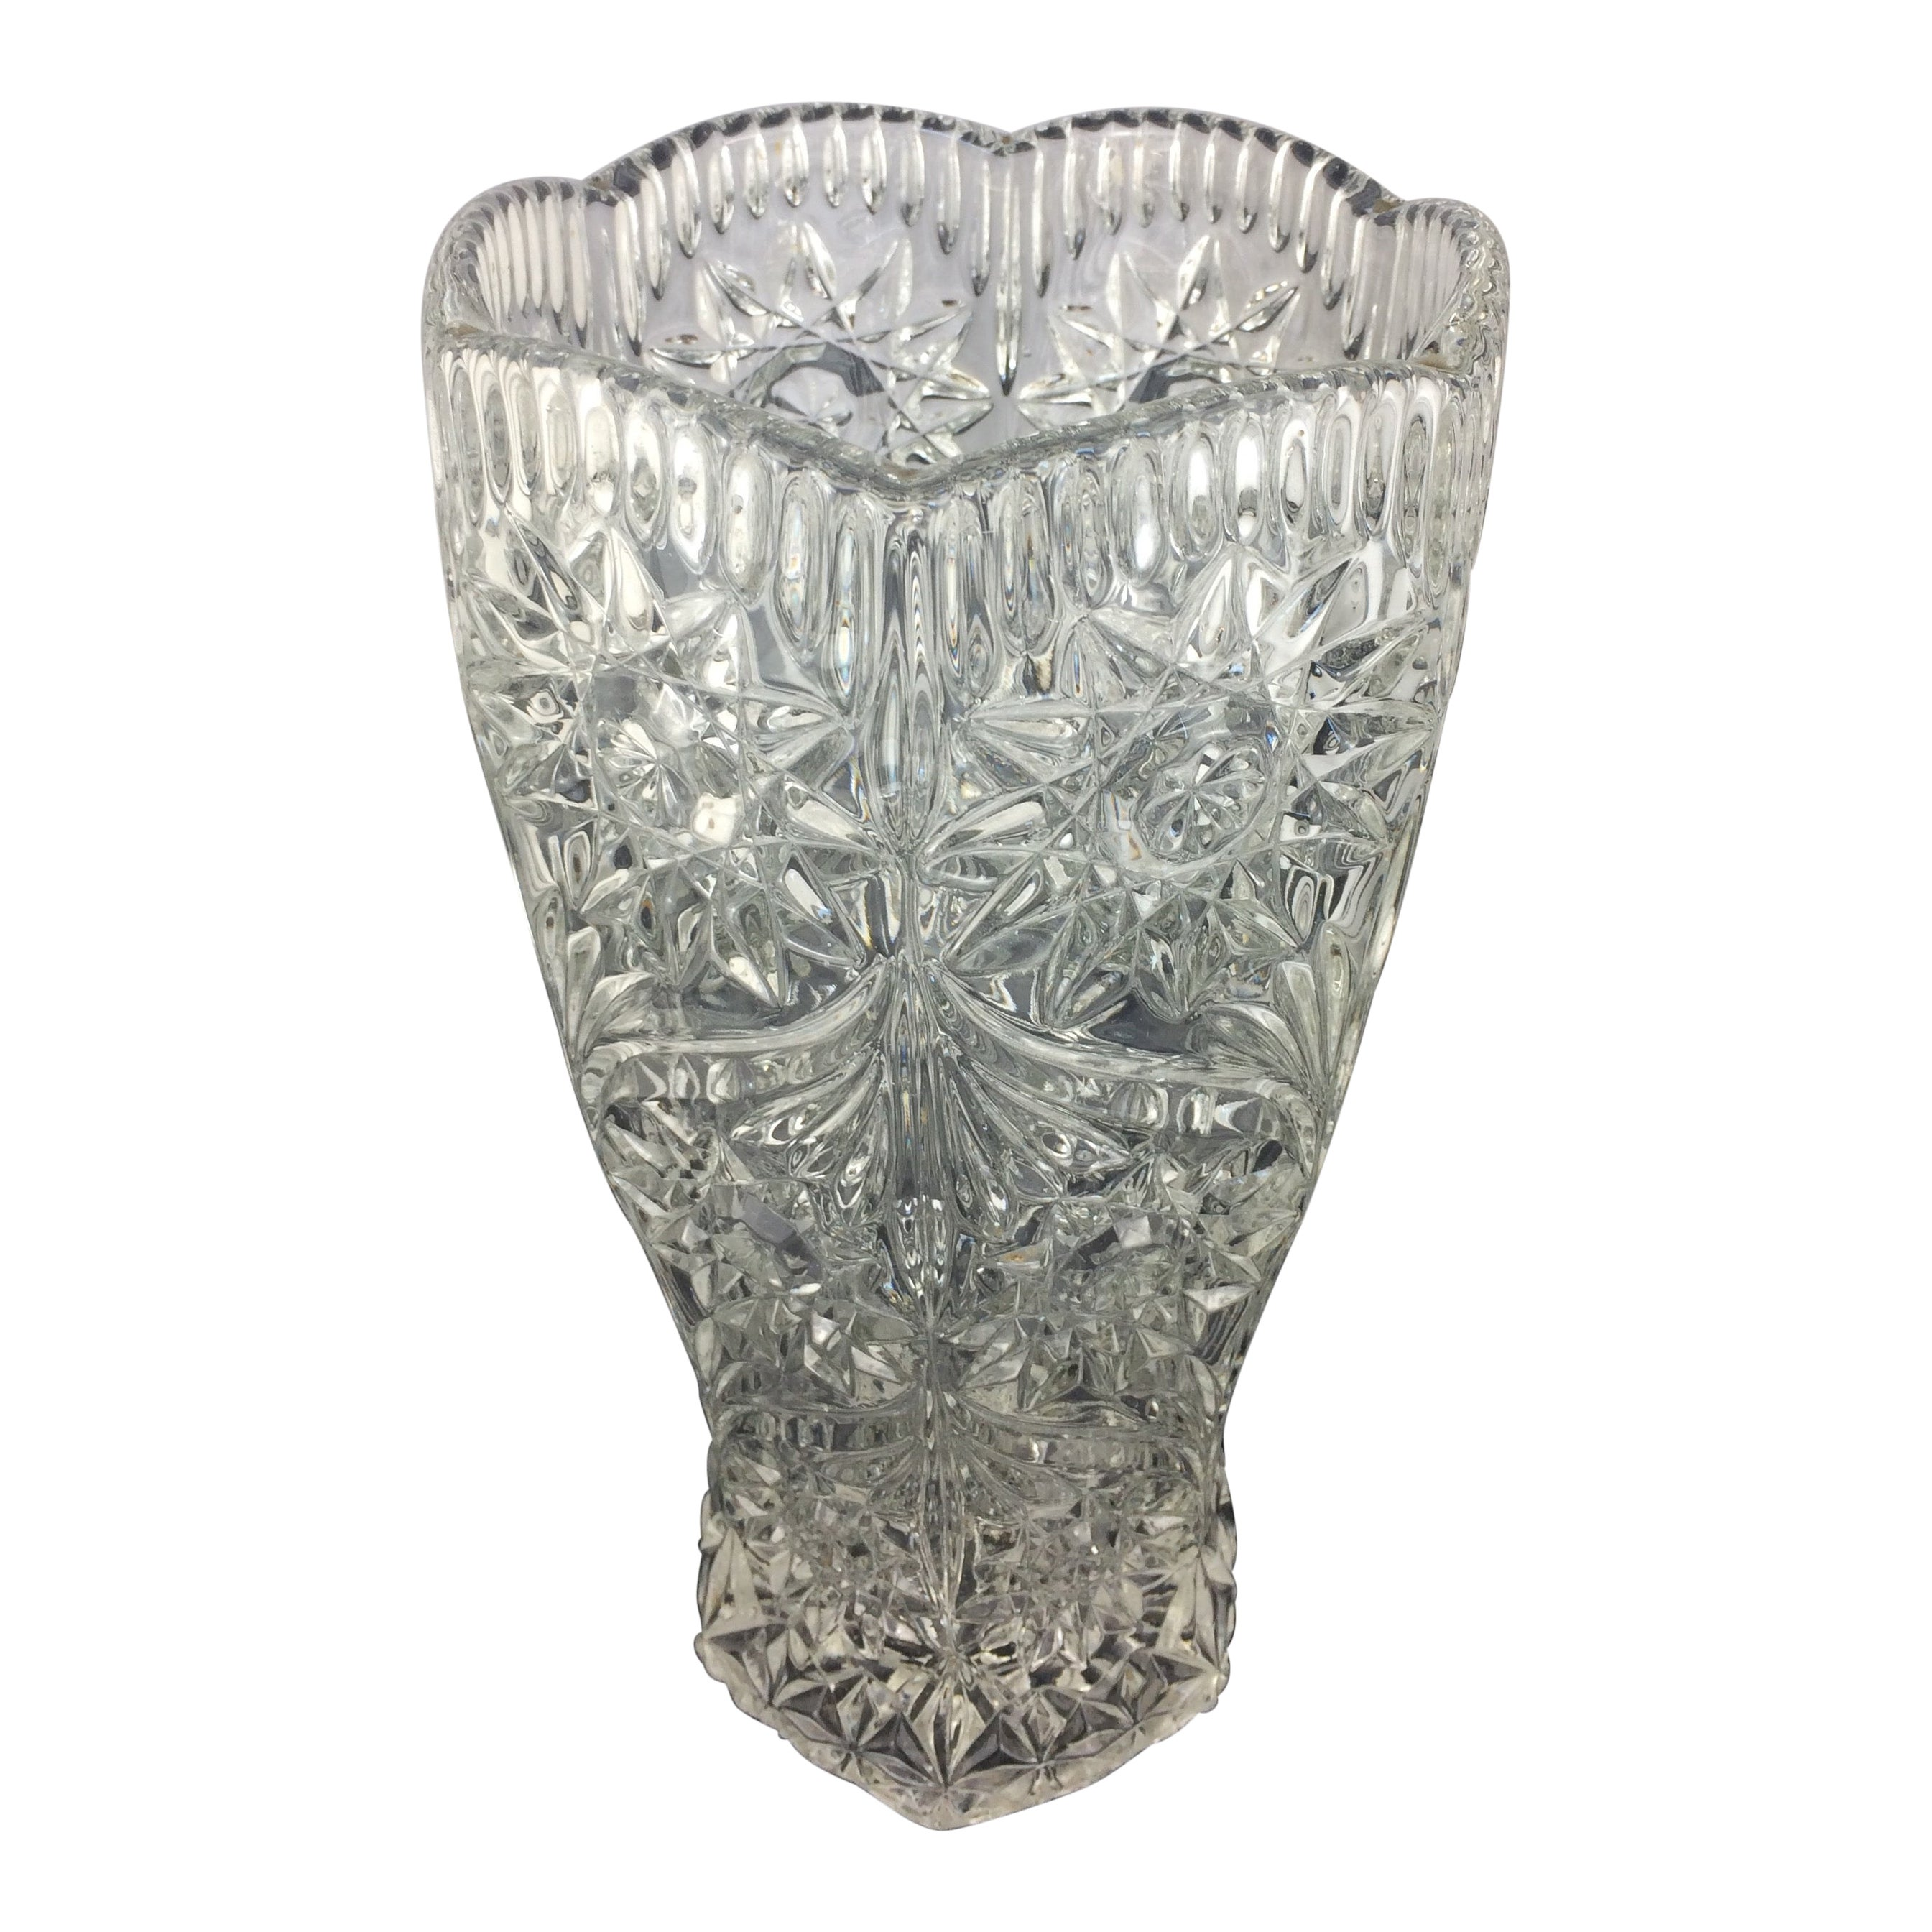 French Crystal Glass Vase